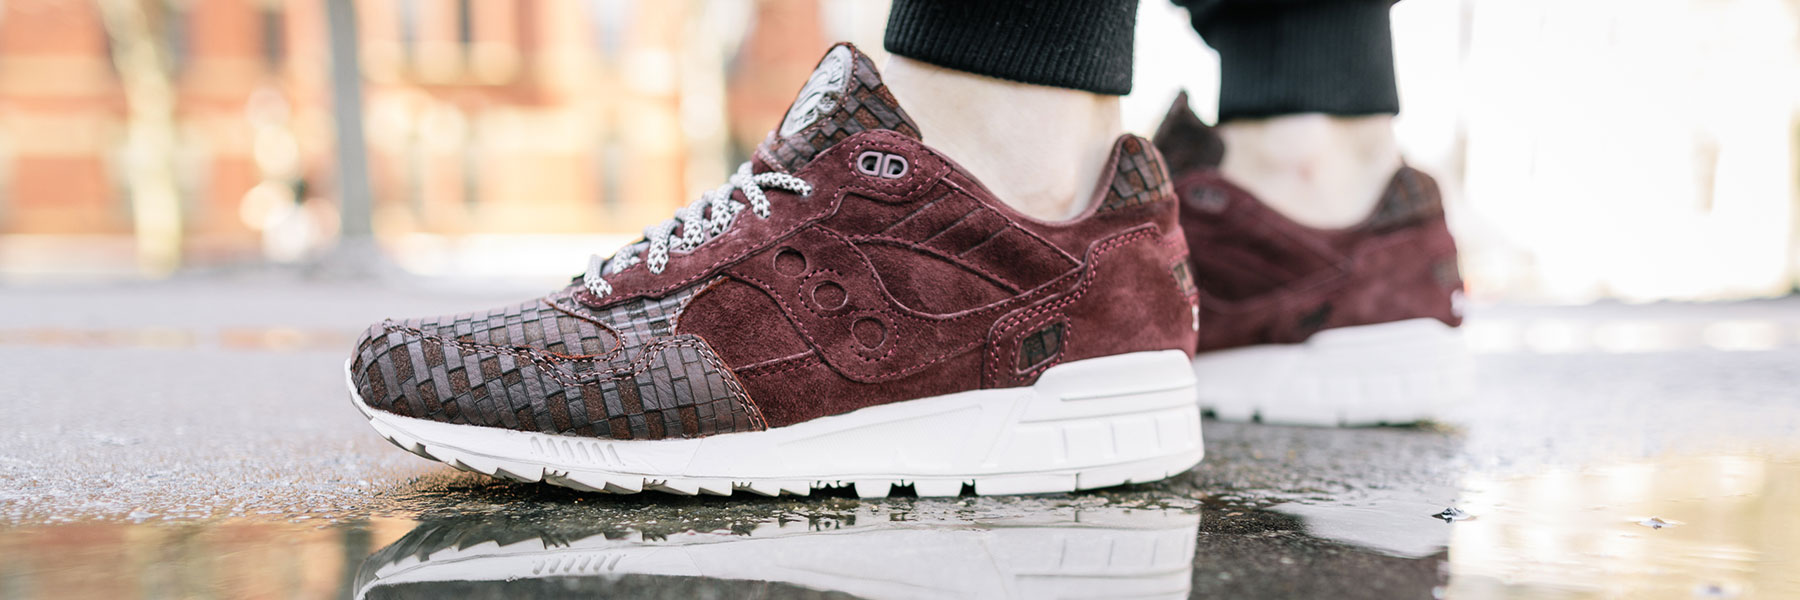 Saucony Originals Bricks Shadow 5000